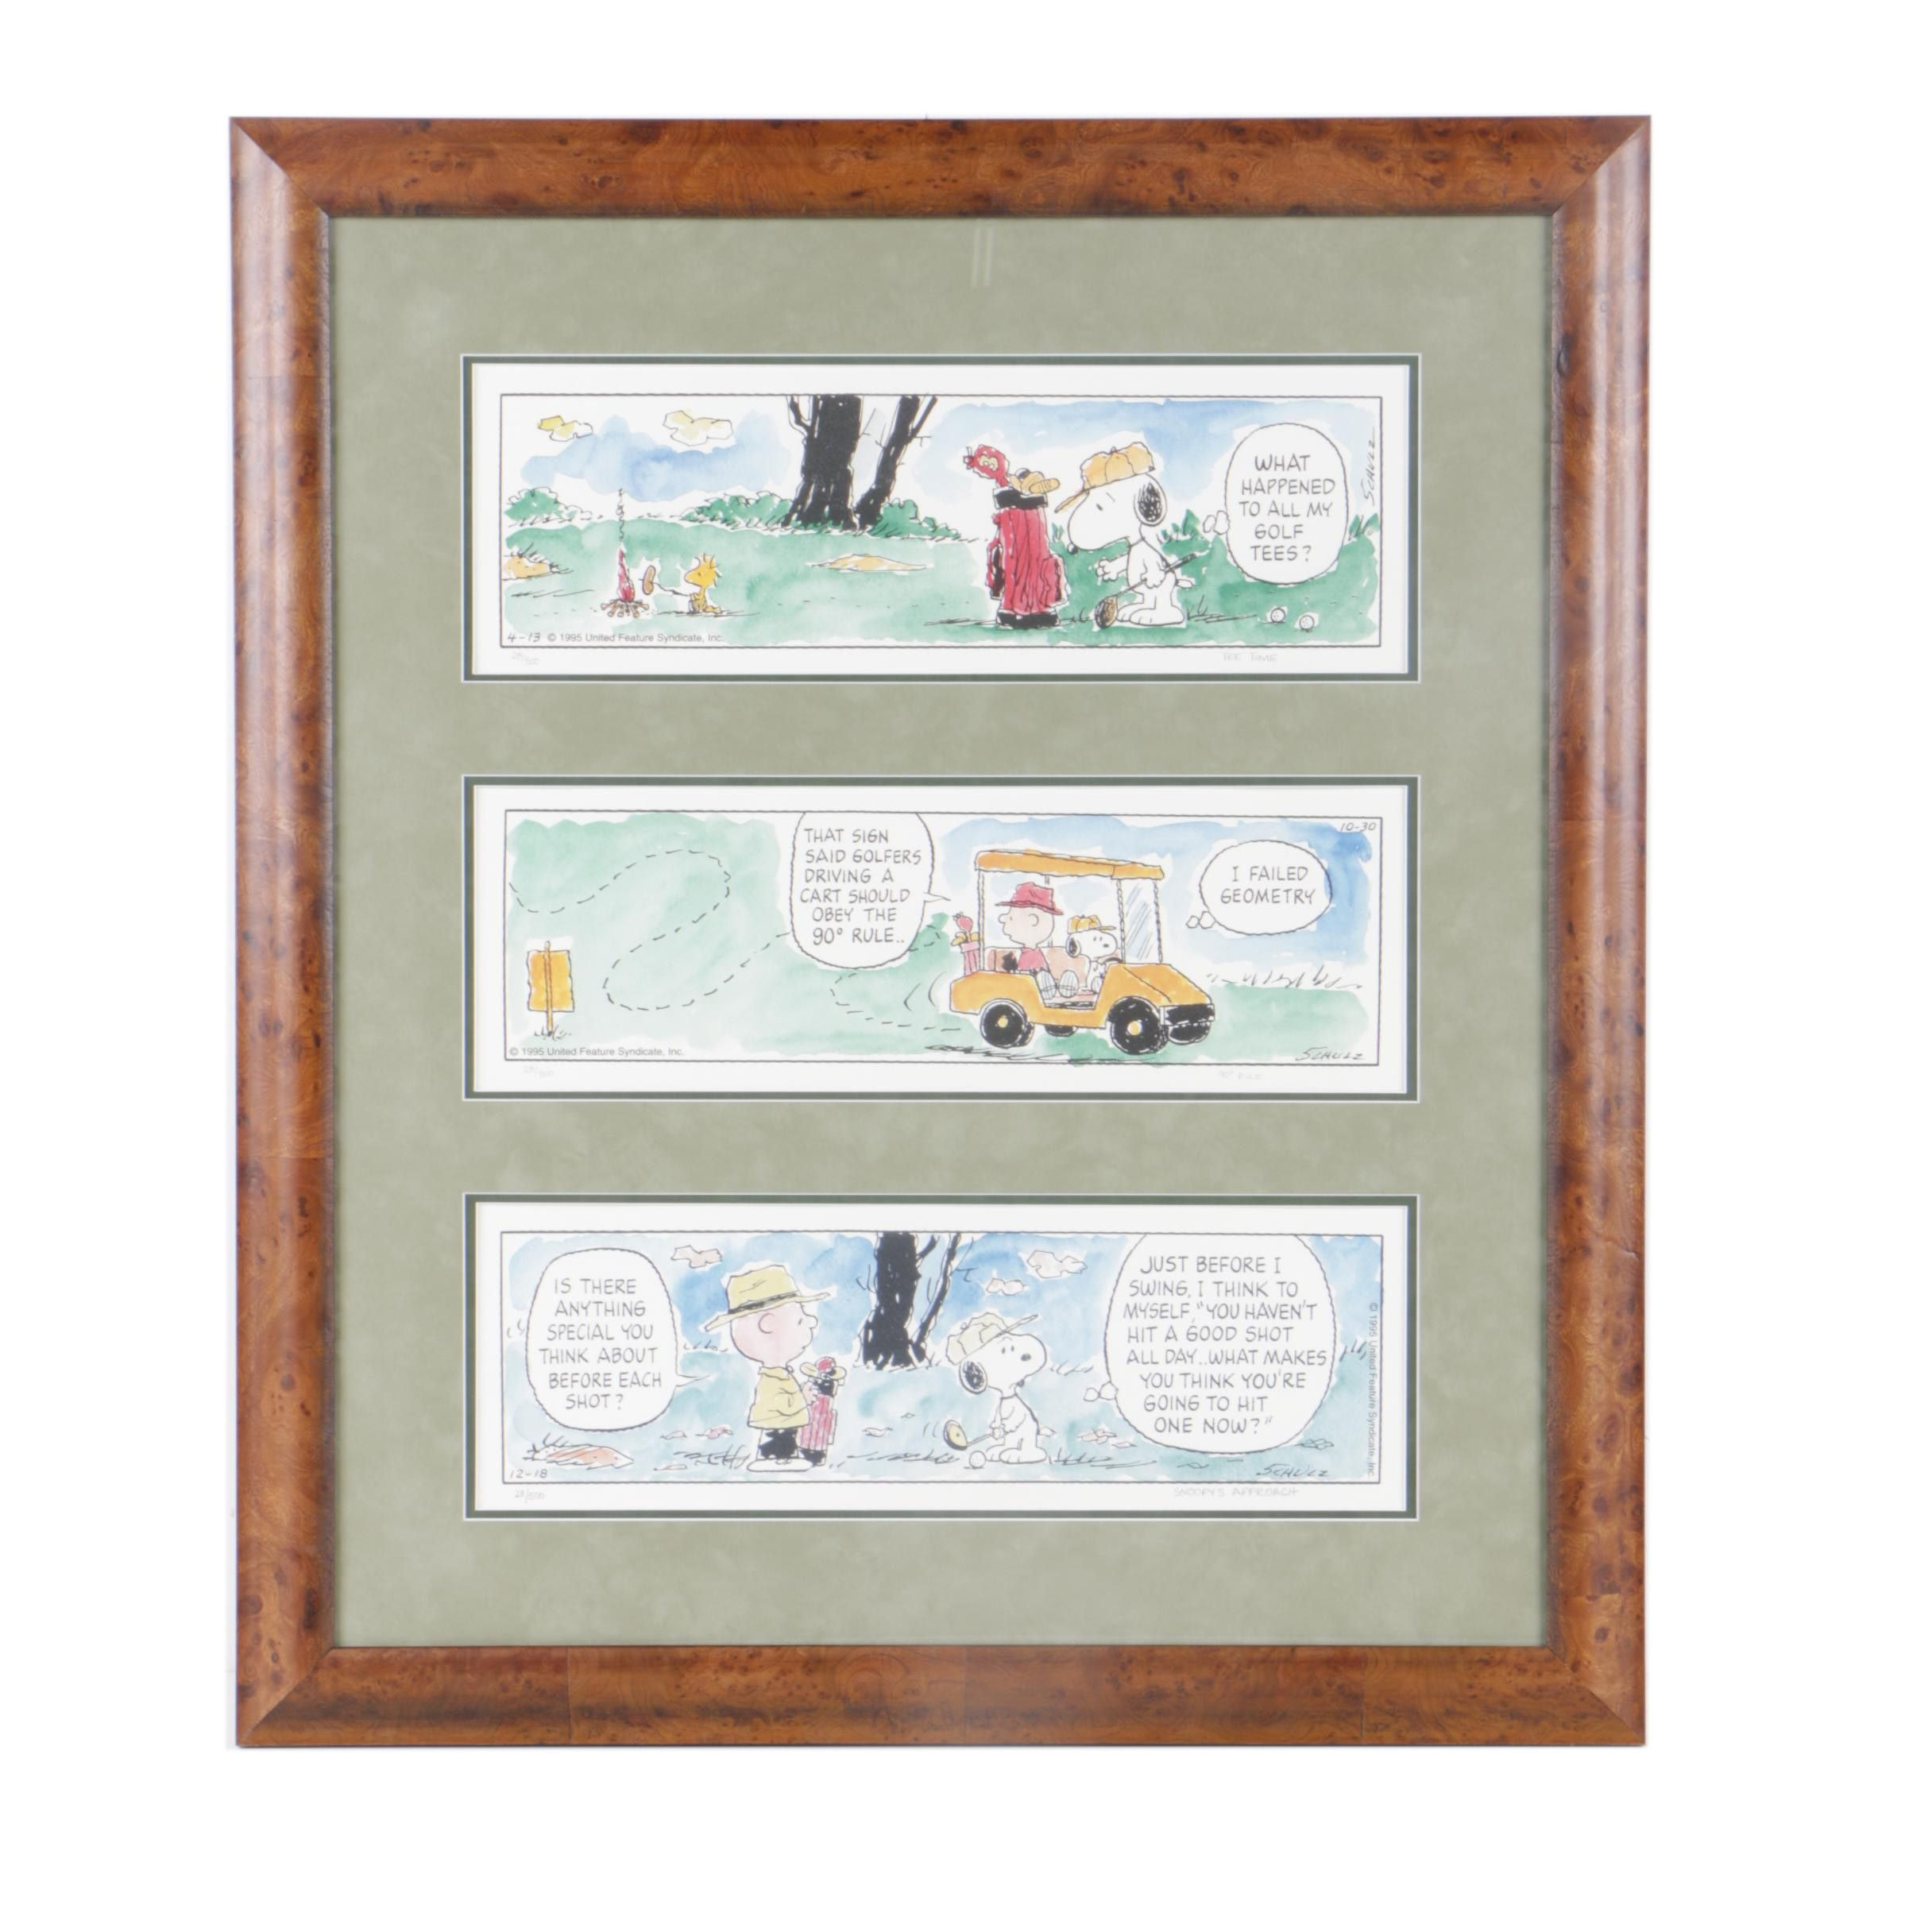 Offset Lithographic 1995 Limited Edition Peanuts Comic Strips